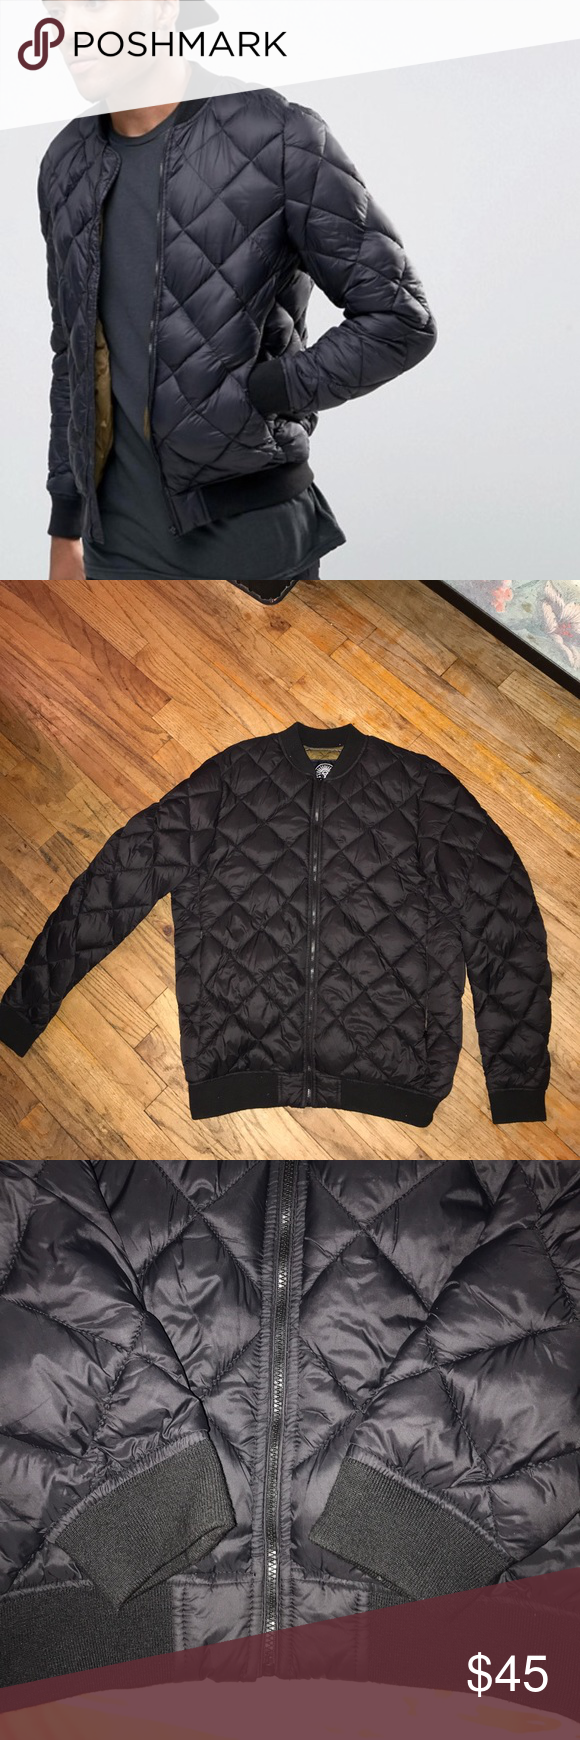 Asos pull&bear quilted bomber jacket Perfect condition. Just a little lent around the collar/wrist/neck area. Been in my closet the whole summer so may want to put in the cleaners. Only worn 3 times. Any questions feel free to ask. Pull&Bear Jackets & Coats Bomber & Varsity